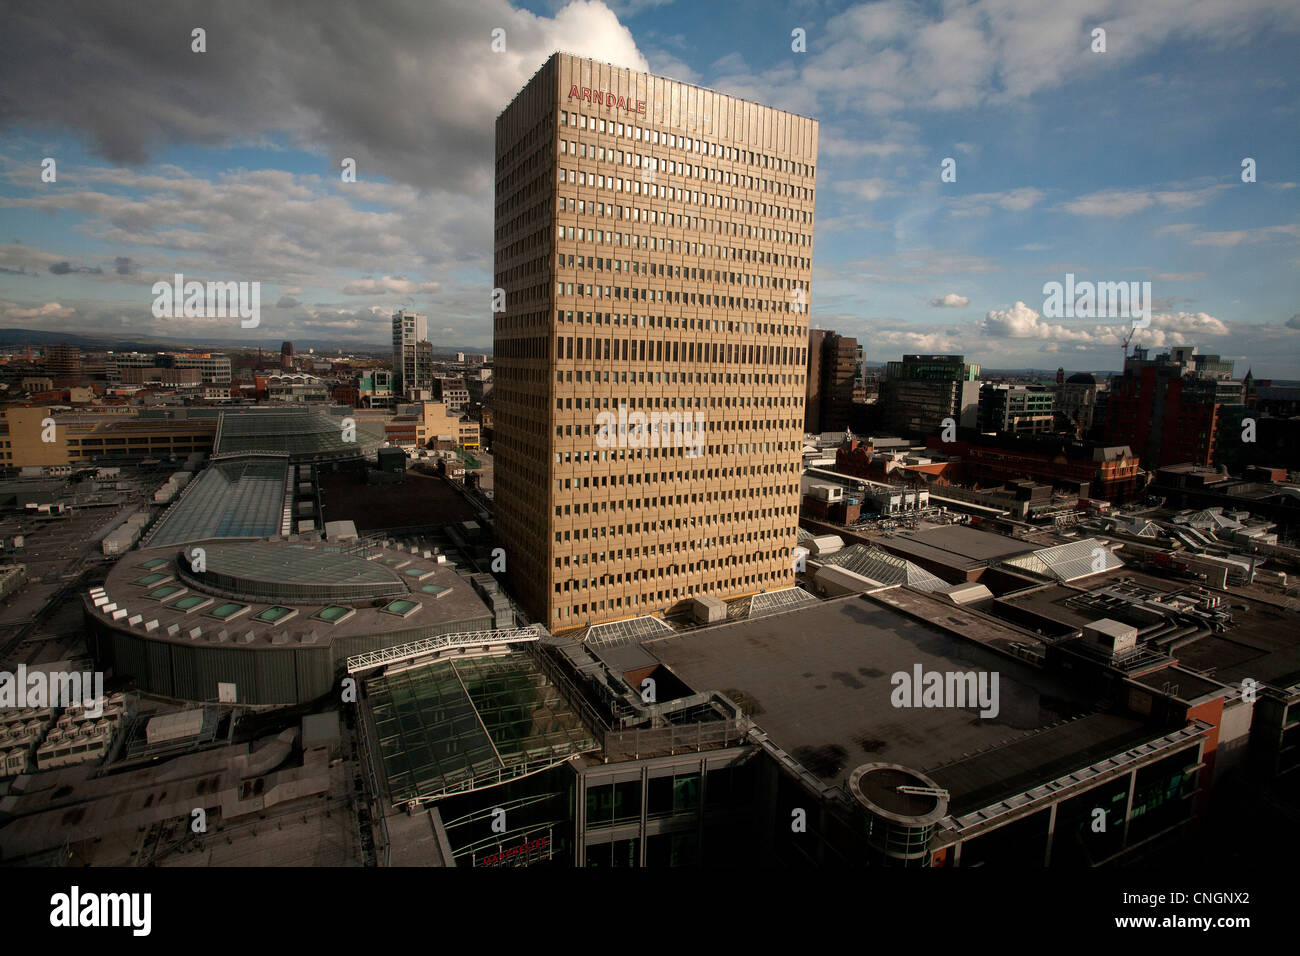 Arndale tower in Manchester - Stock Image